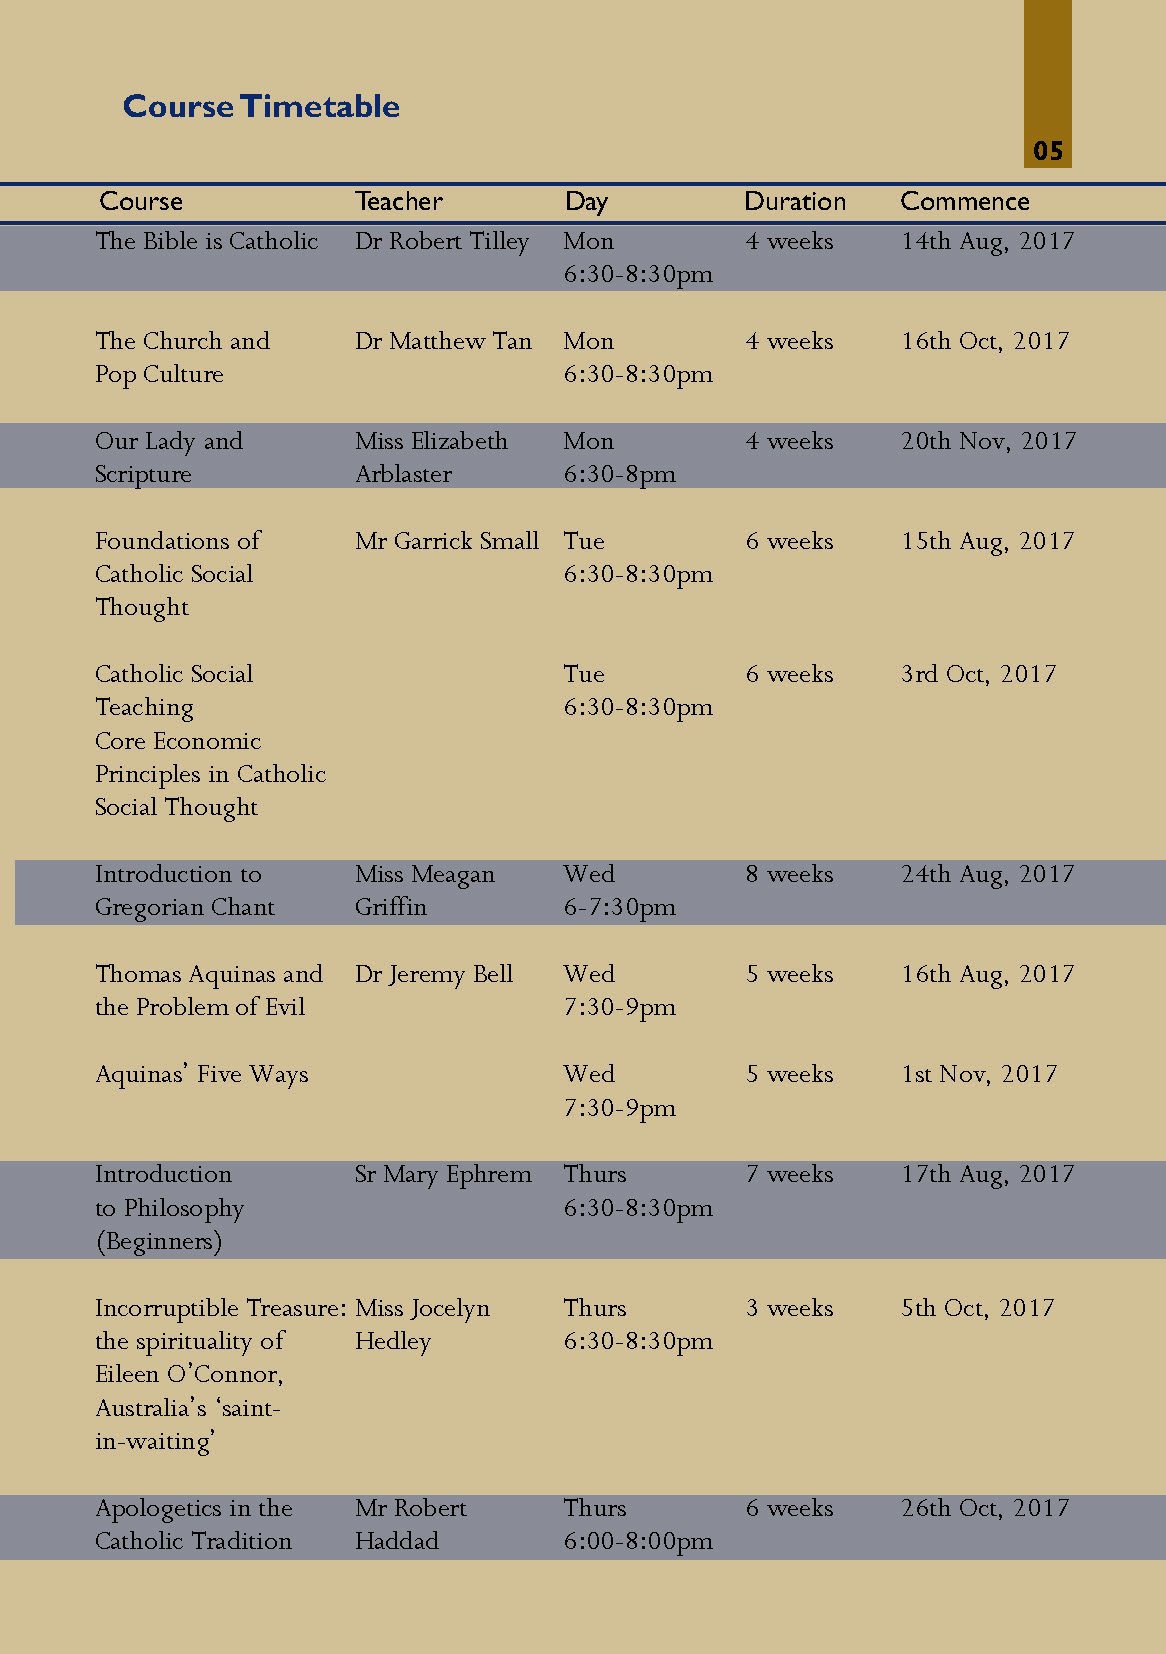 ssc-course-outline-2017-page-07.jpg